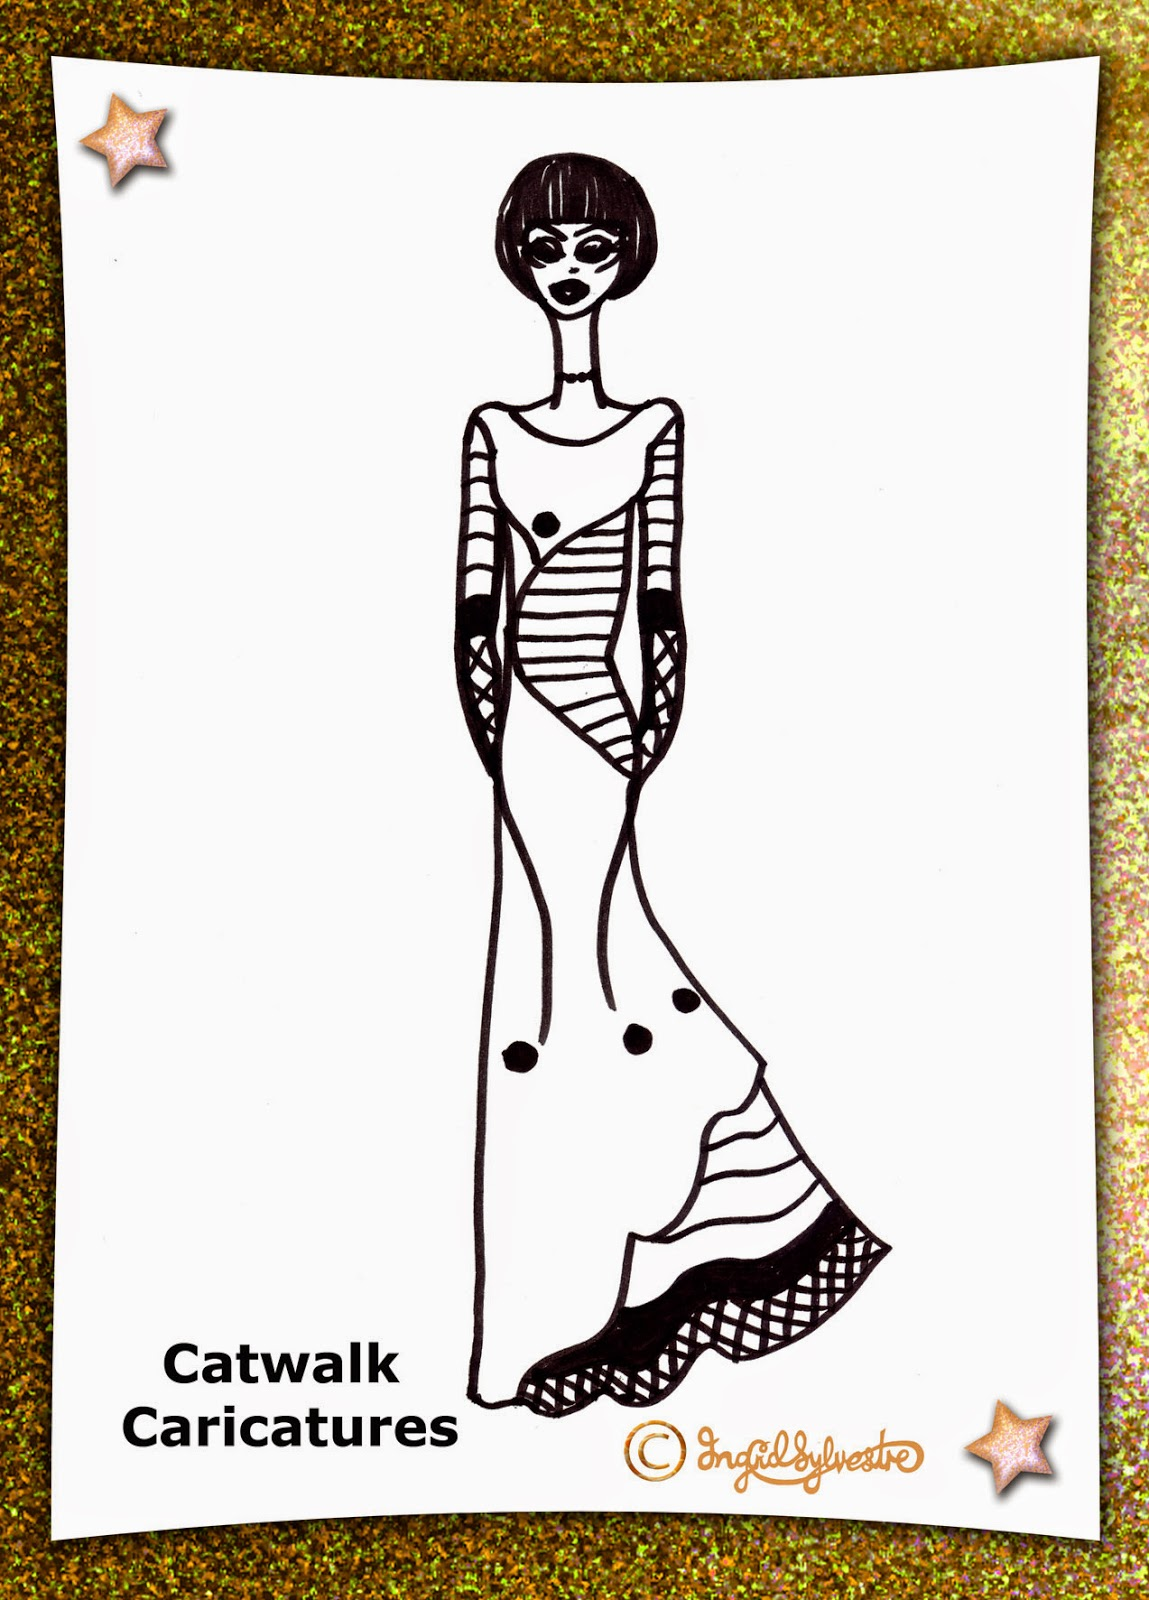 North East caricaturist Ingrid Sylvestre Catwalk Caricatures at Charity Fashion Events and Corporate Events Newcastle Durham Sunderland Middlesbrough Teesside North Yorkshire Northumberland Darlington UK